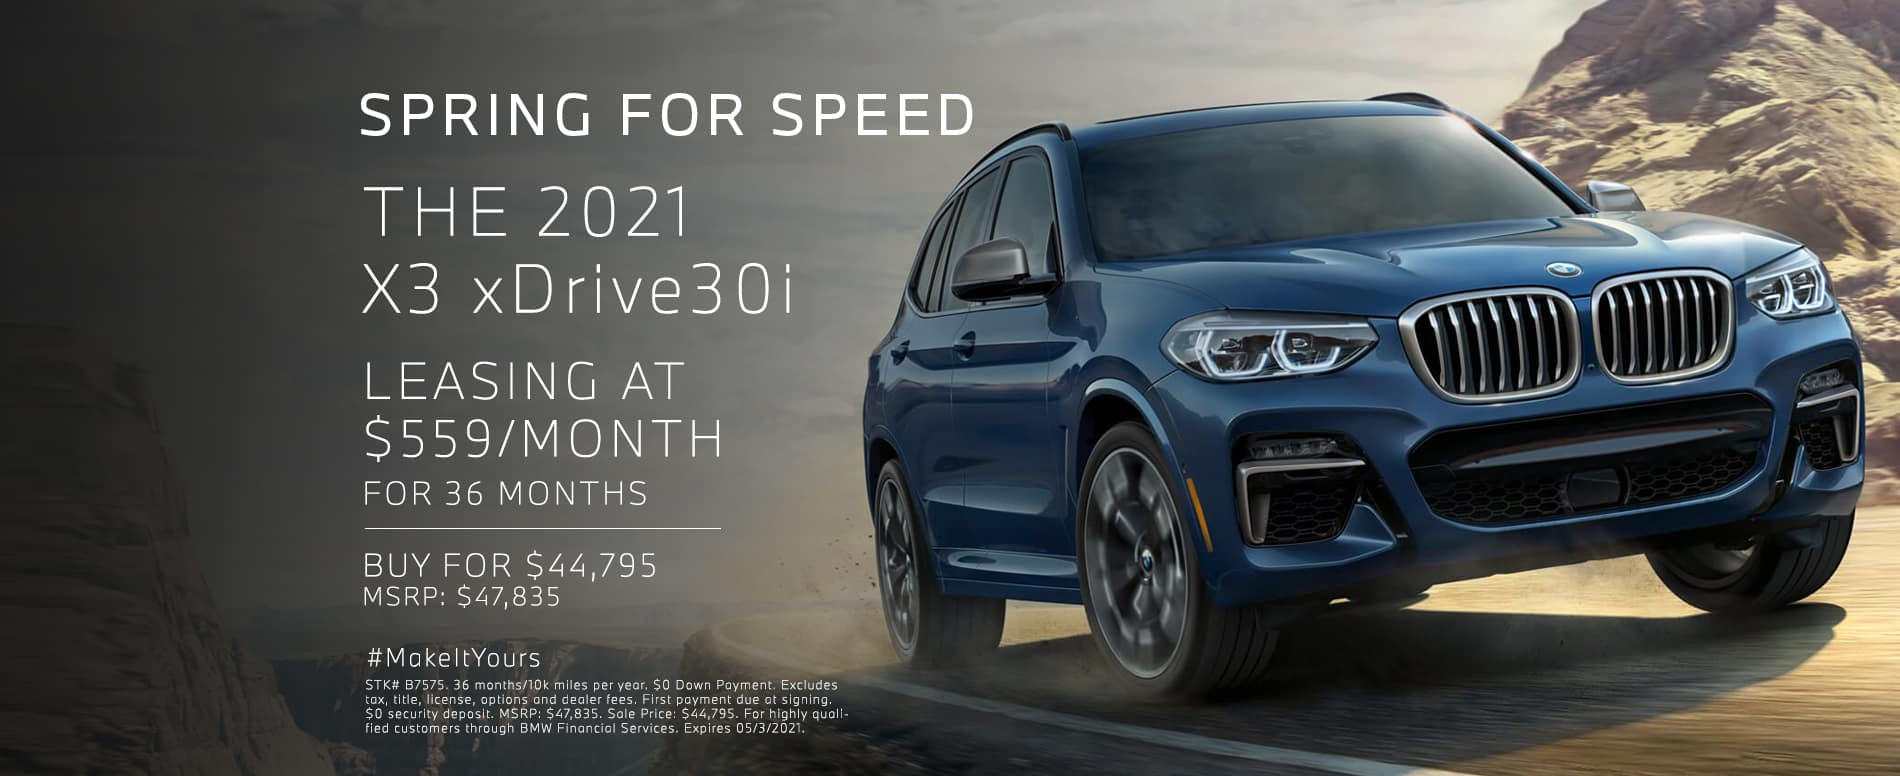 Lease a new X3. See dealer for details.